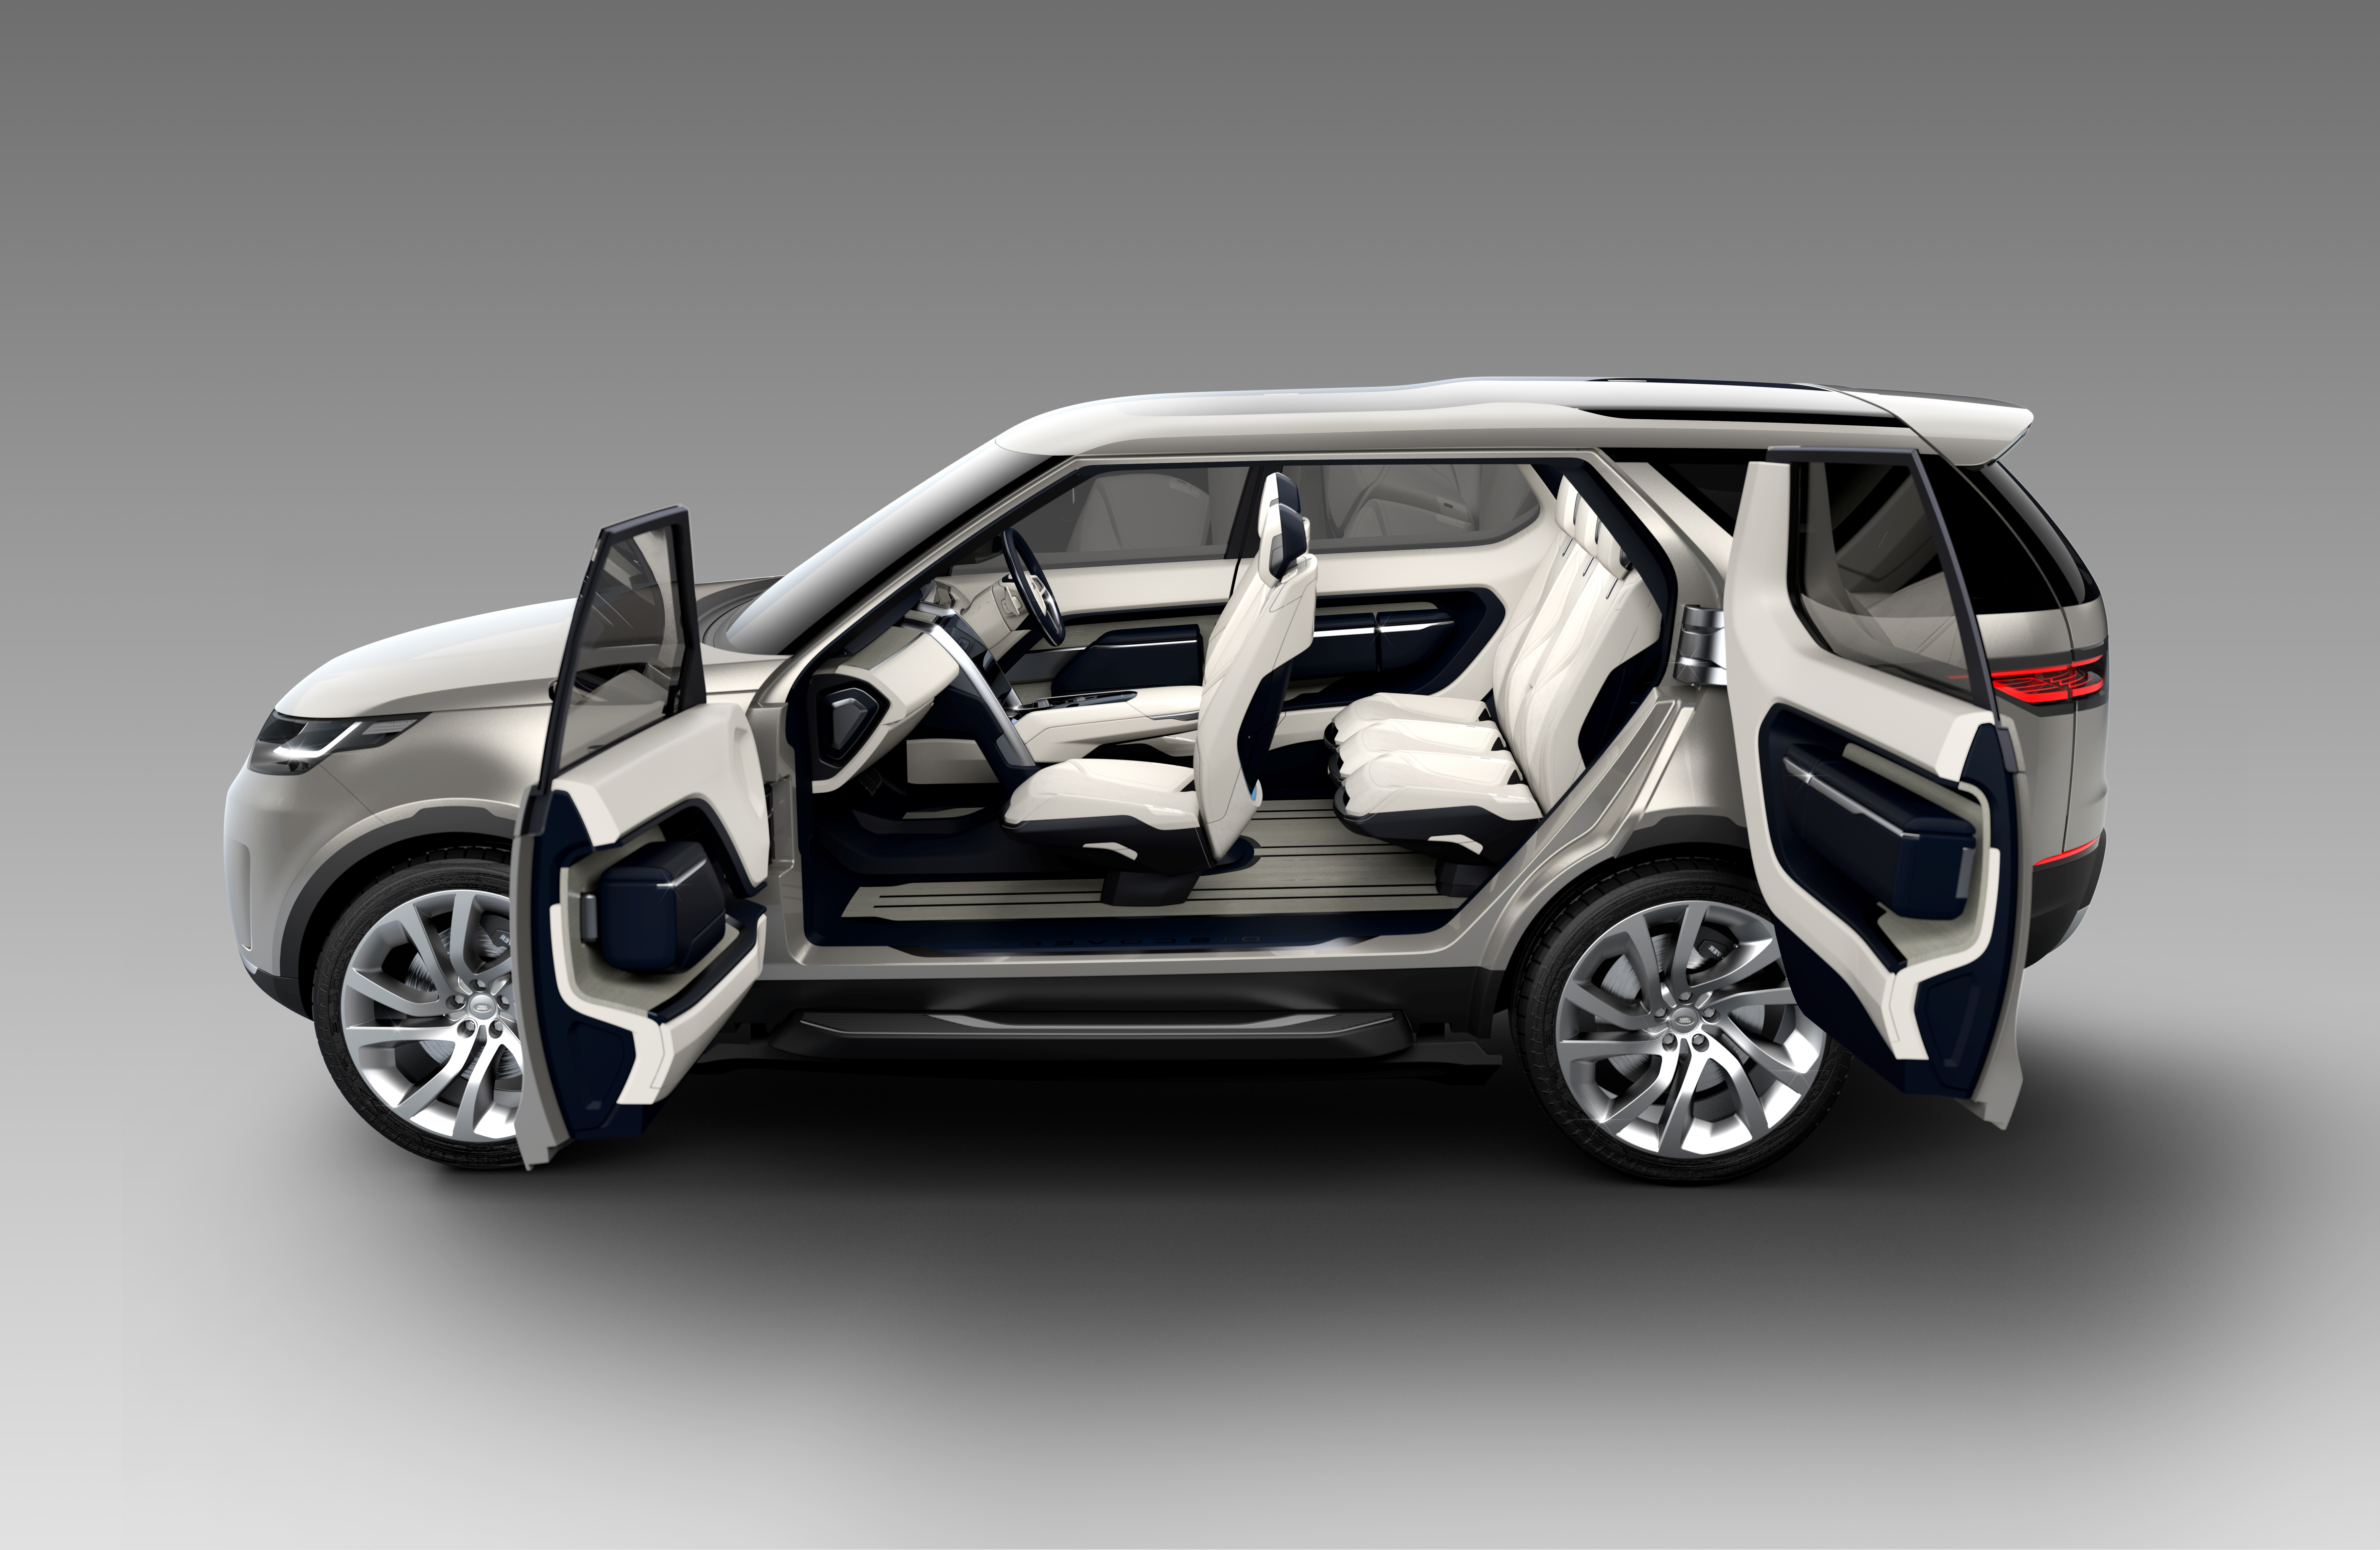 https://upload.wikimedia.org/wikipedia/commons/6/62/Land_Rover_Discovery_Vision_Concept_%2813860775473%29.jpg